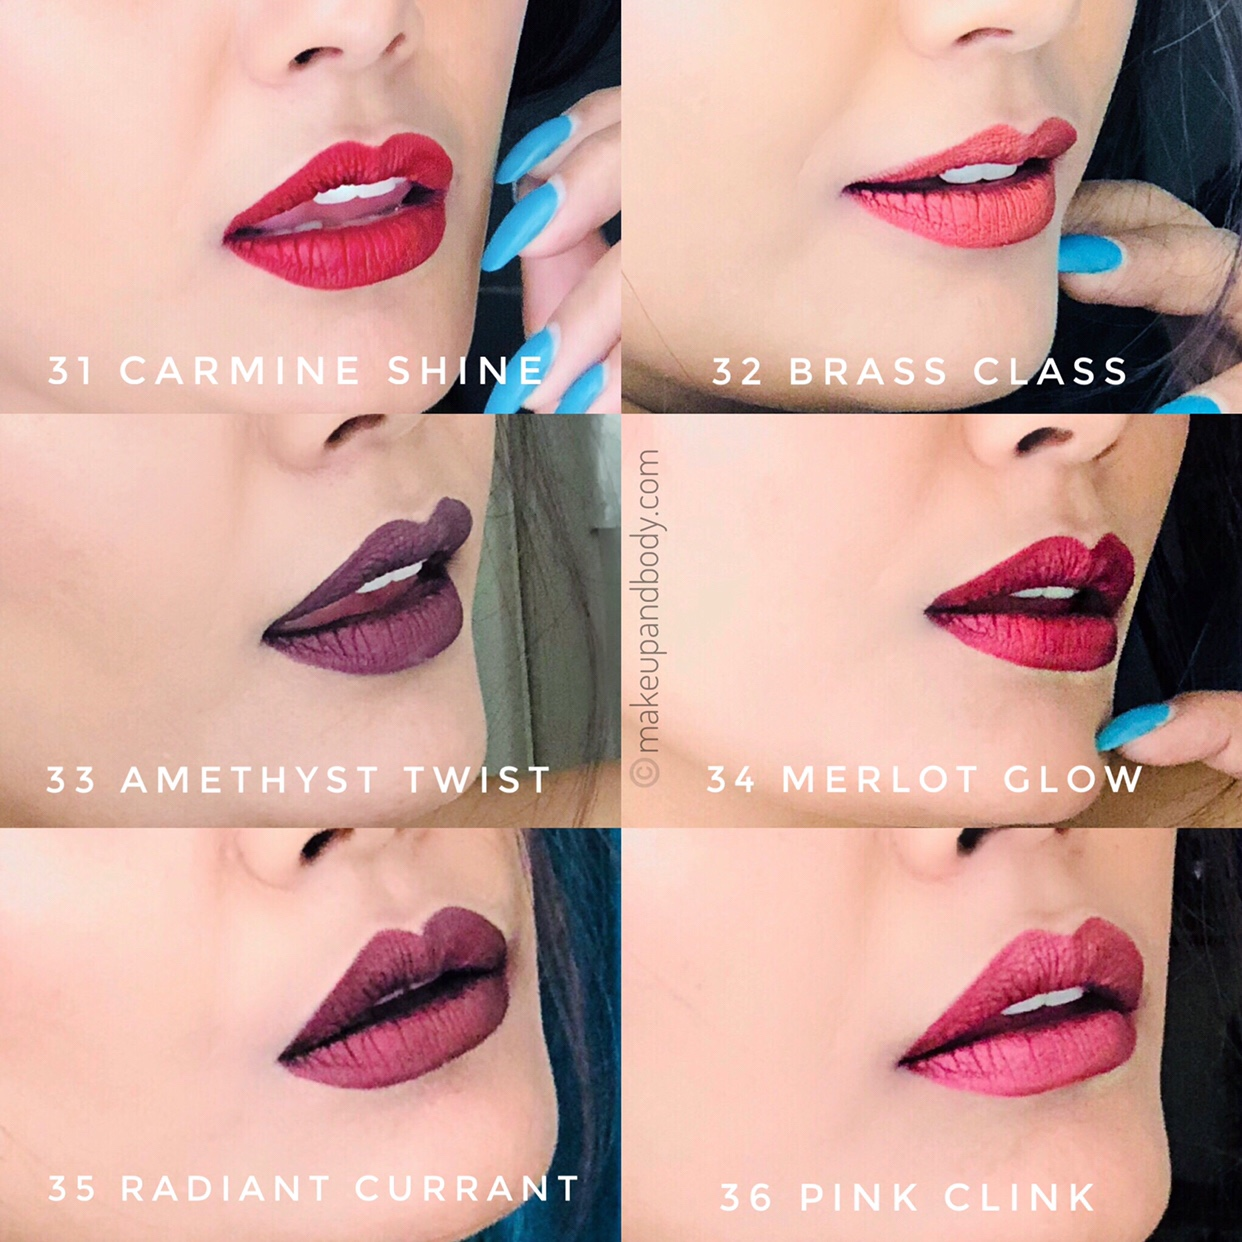 SUGAR COSMETICS SMUDGE ME NOT METALLIC LIQUID LIPSTICKS REVIEW AND SWATCHES